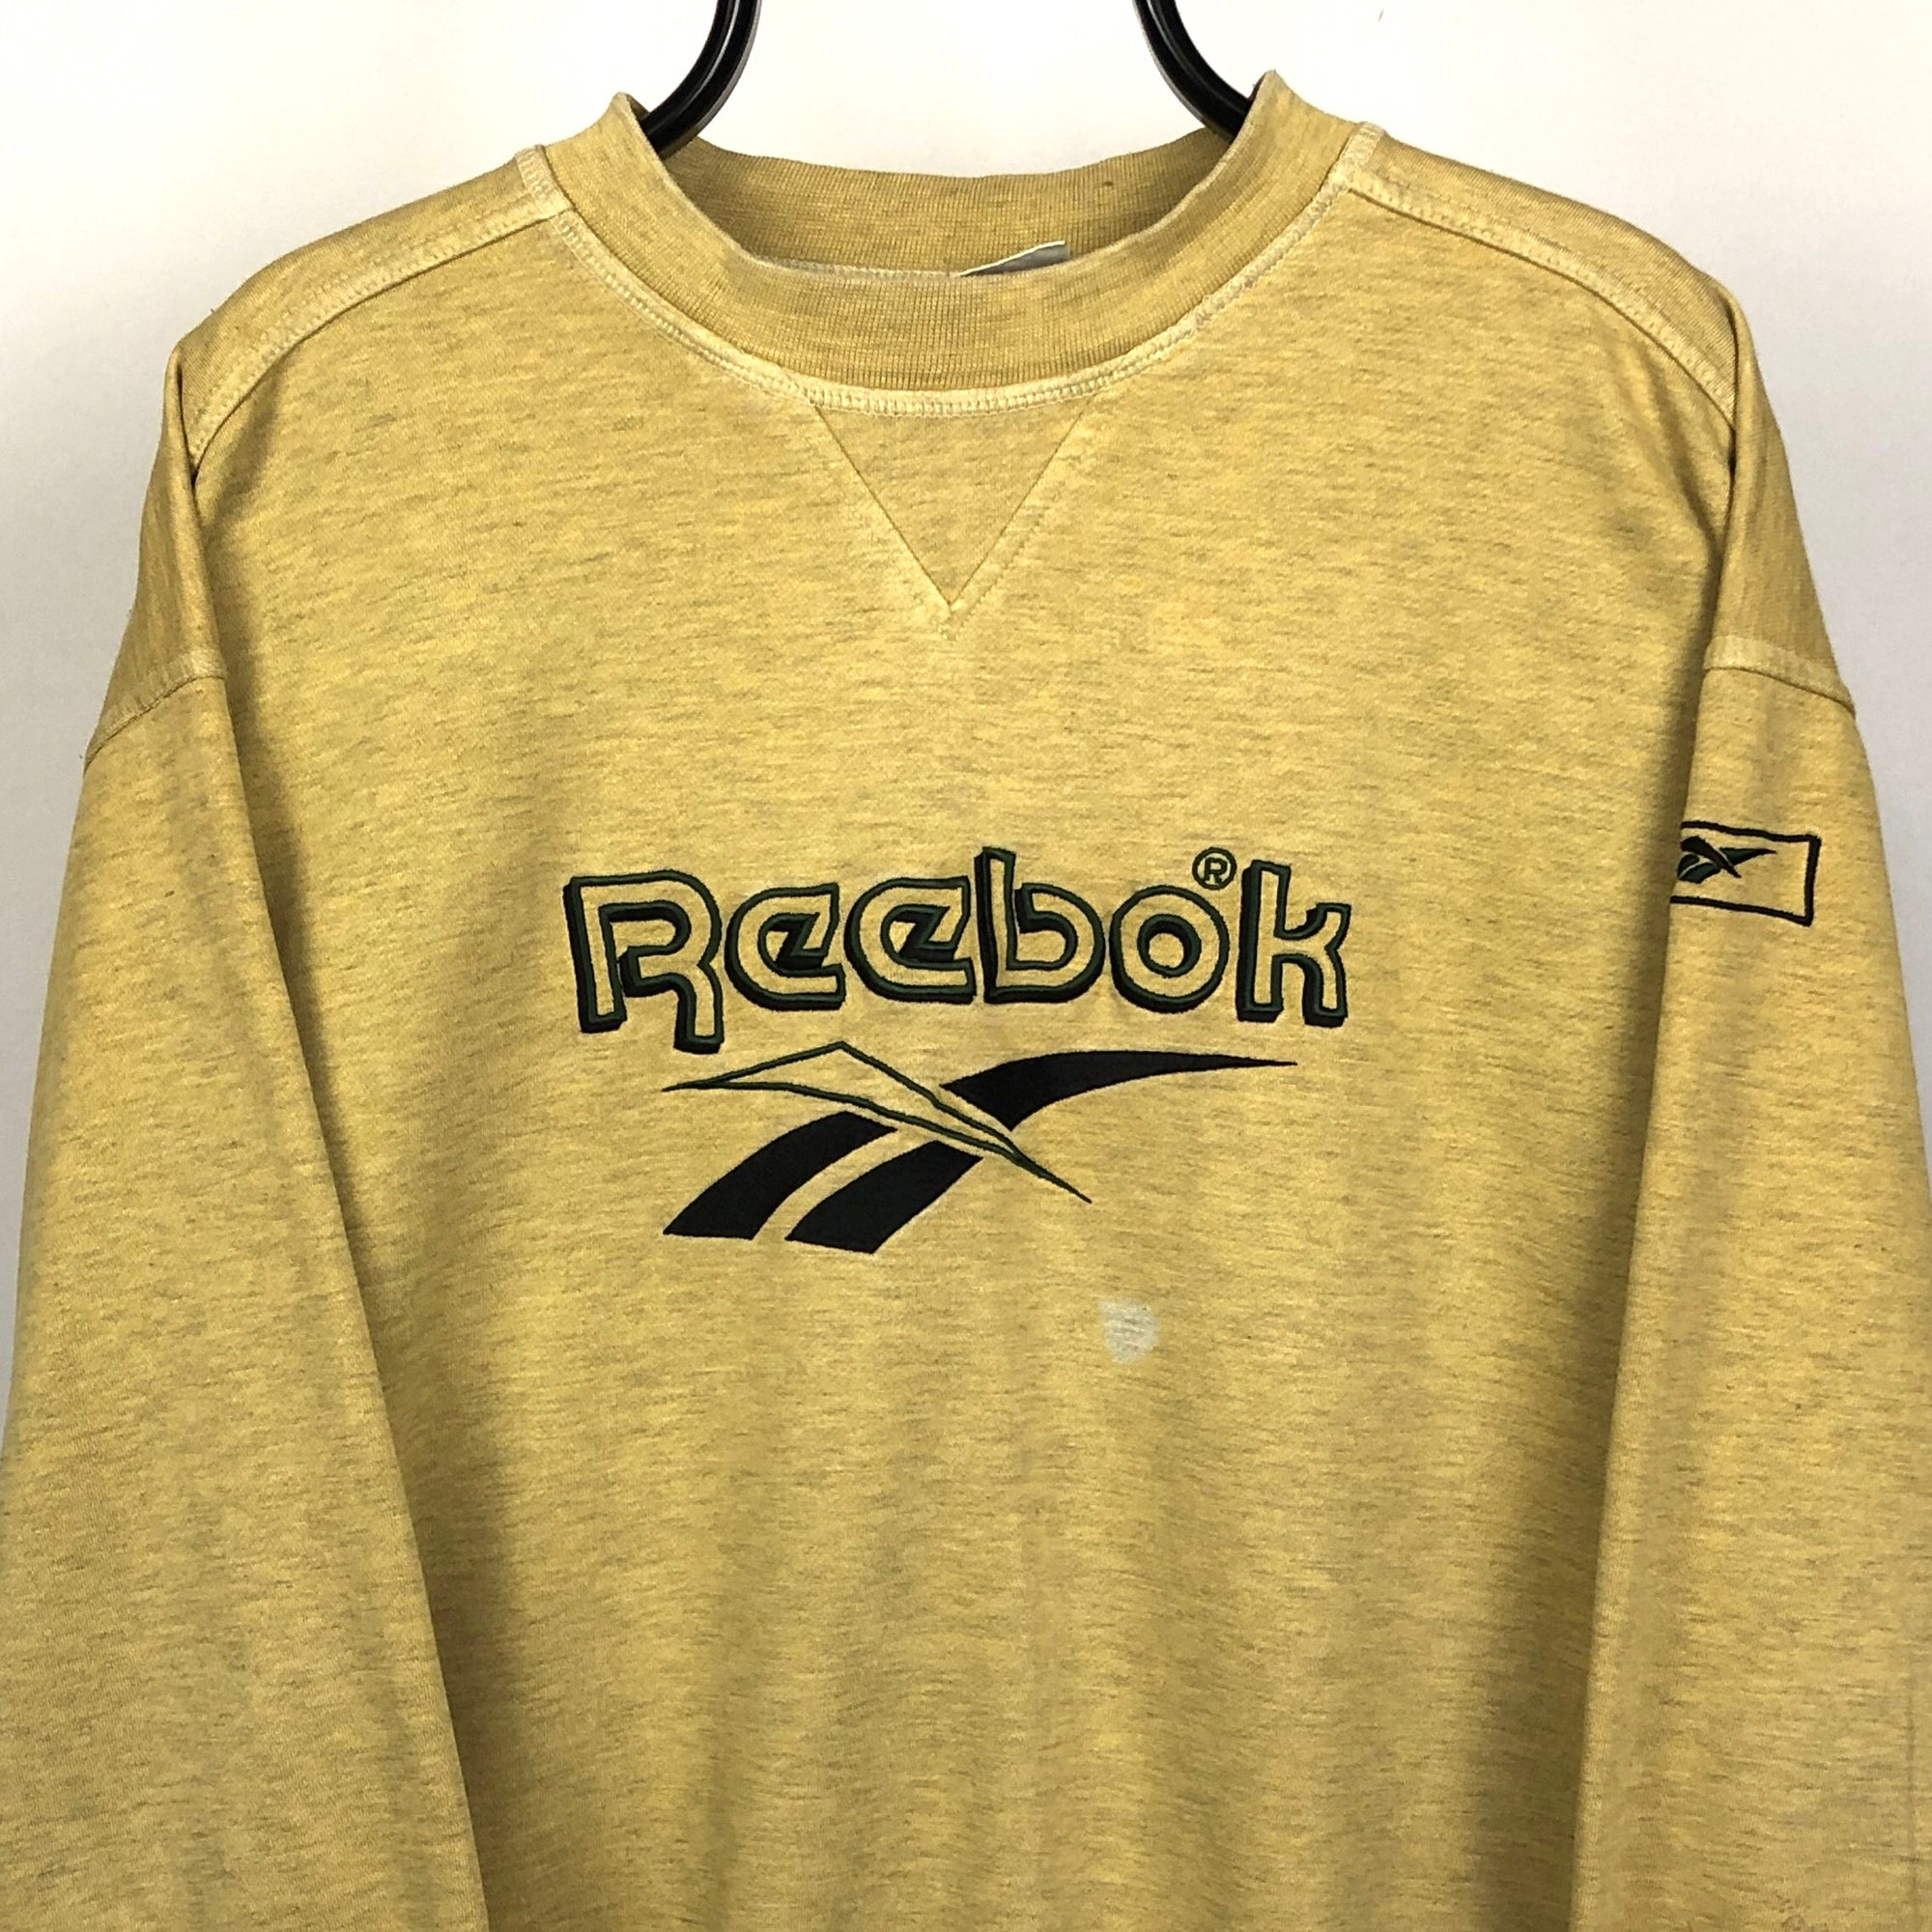 Vintage Reebok Spellout Sweatshirt in Yellow - Men's Large/Women's XL